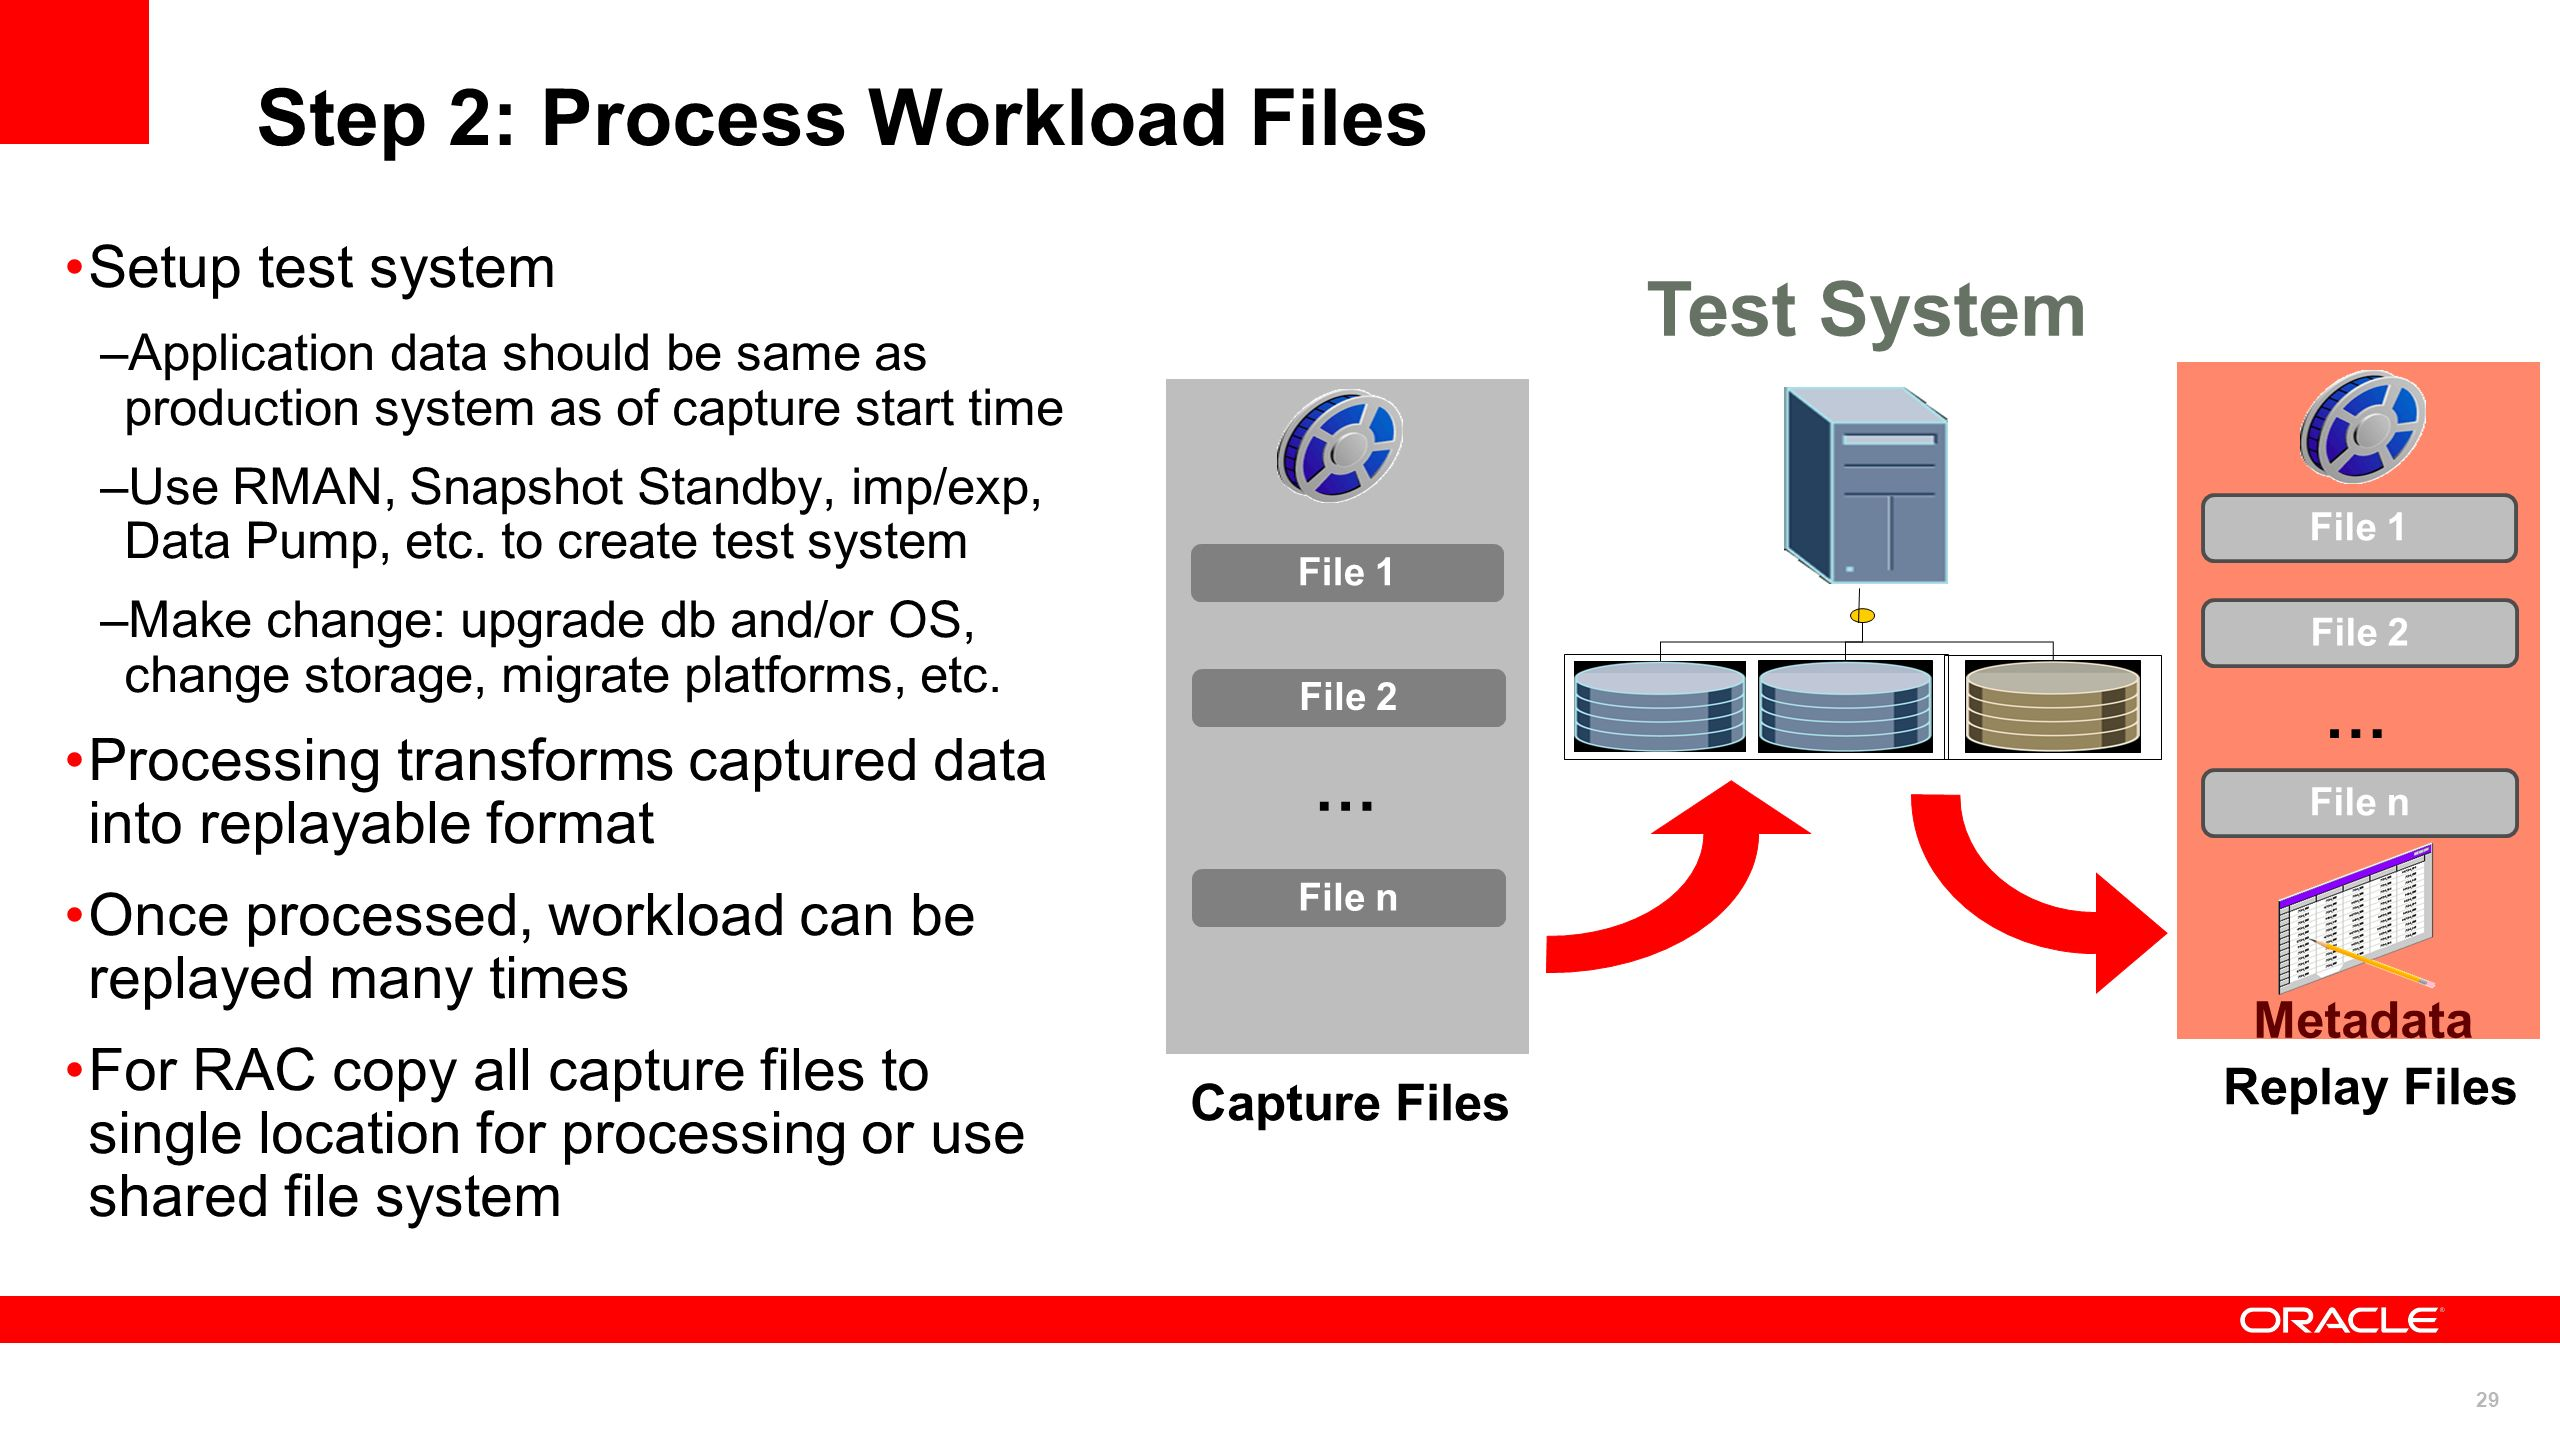 Step 2: Process Workload Files